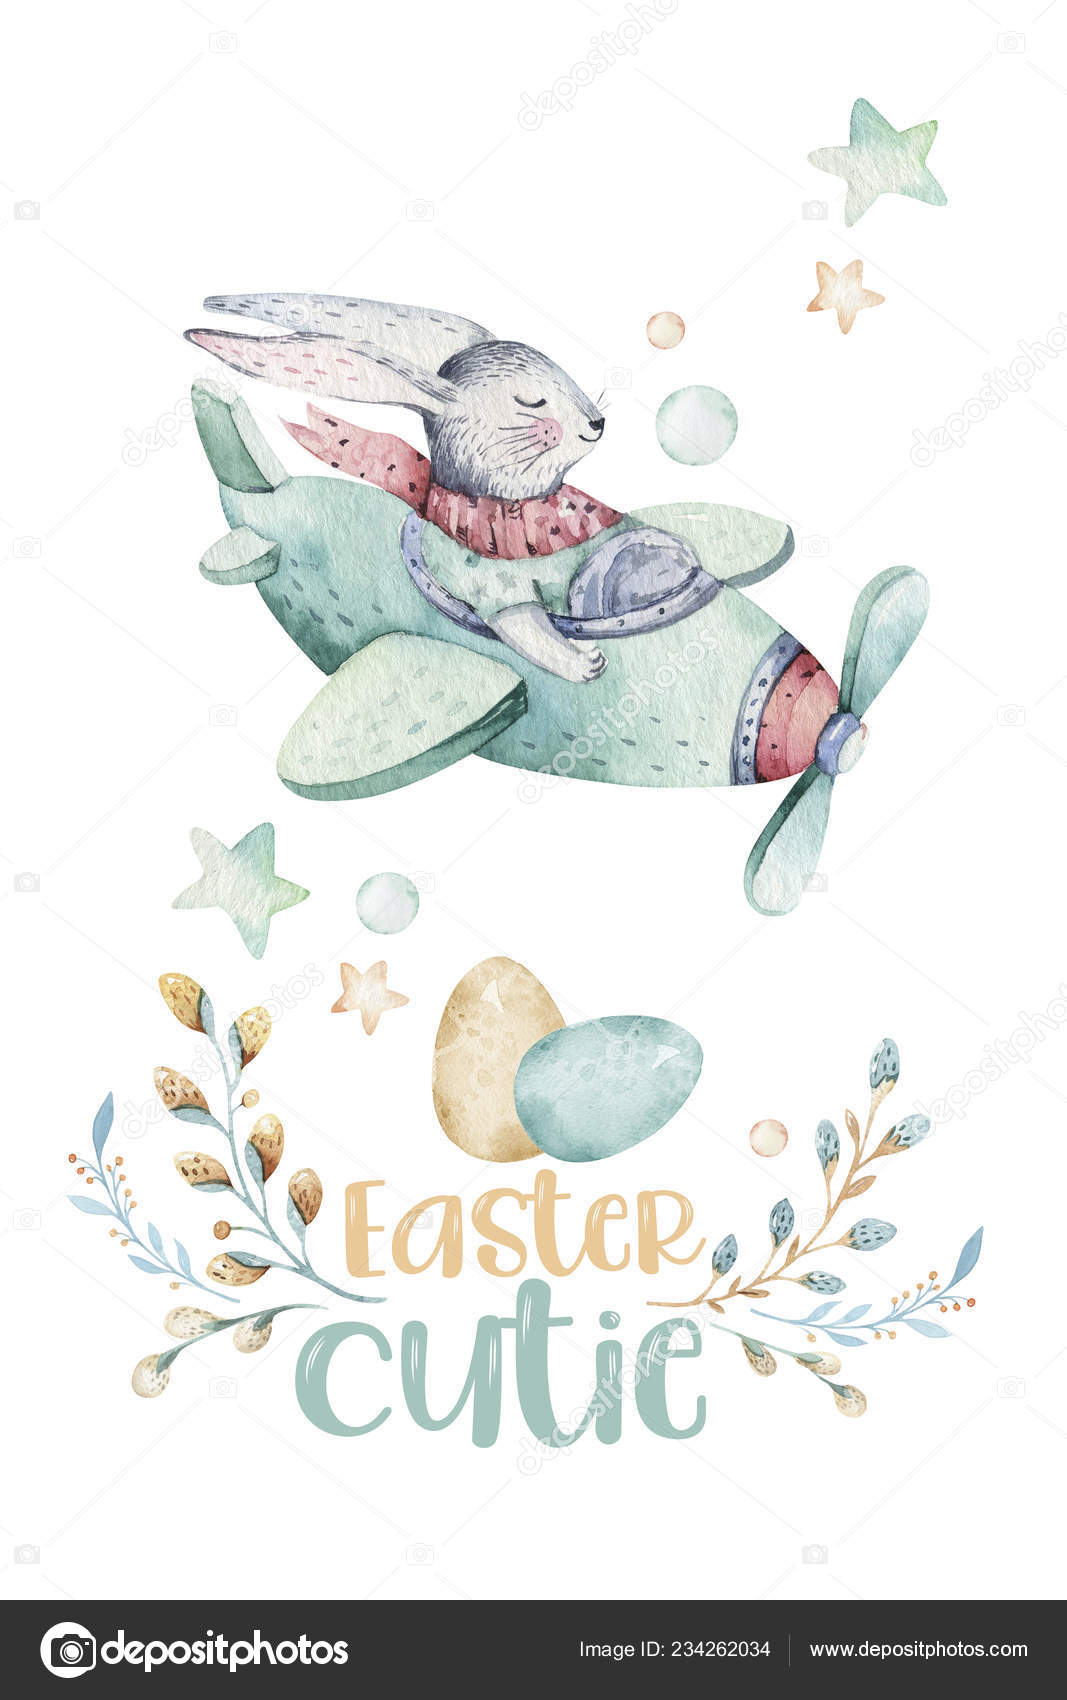 Hand Drawing Fly Cute Easter Pilot Bunny Watercolor Cartoon Bunnies